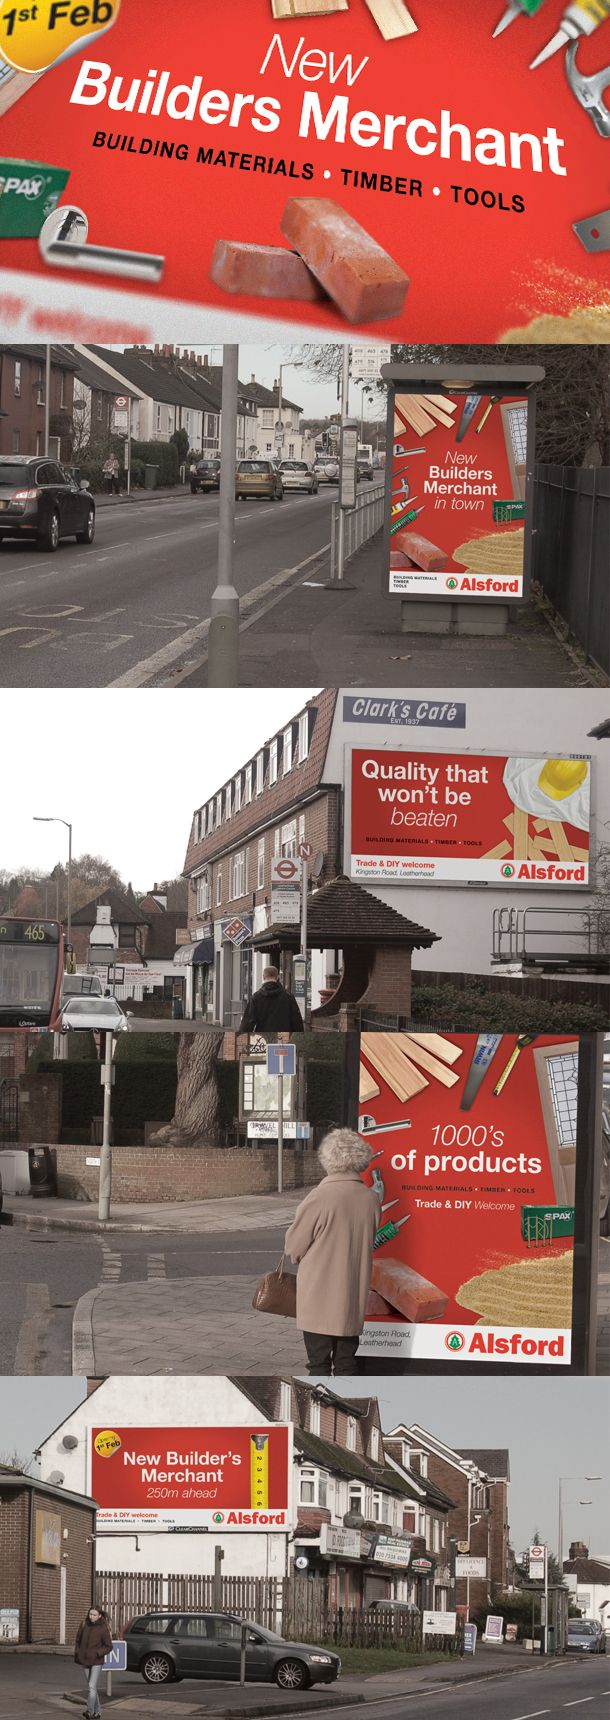 An advertising campaign for the launch of a new Alsford Timber store.